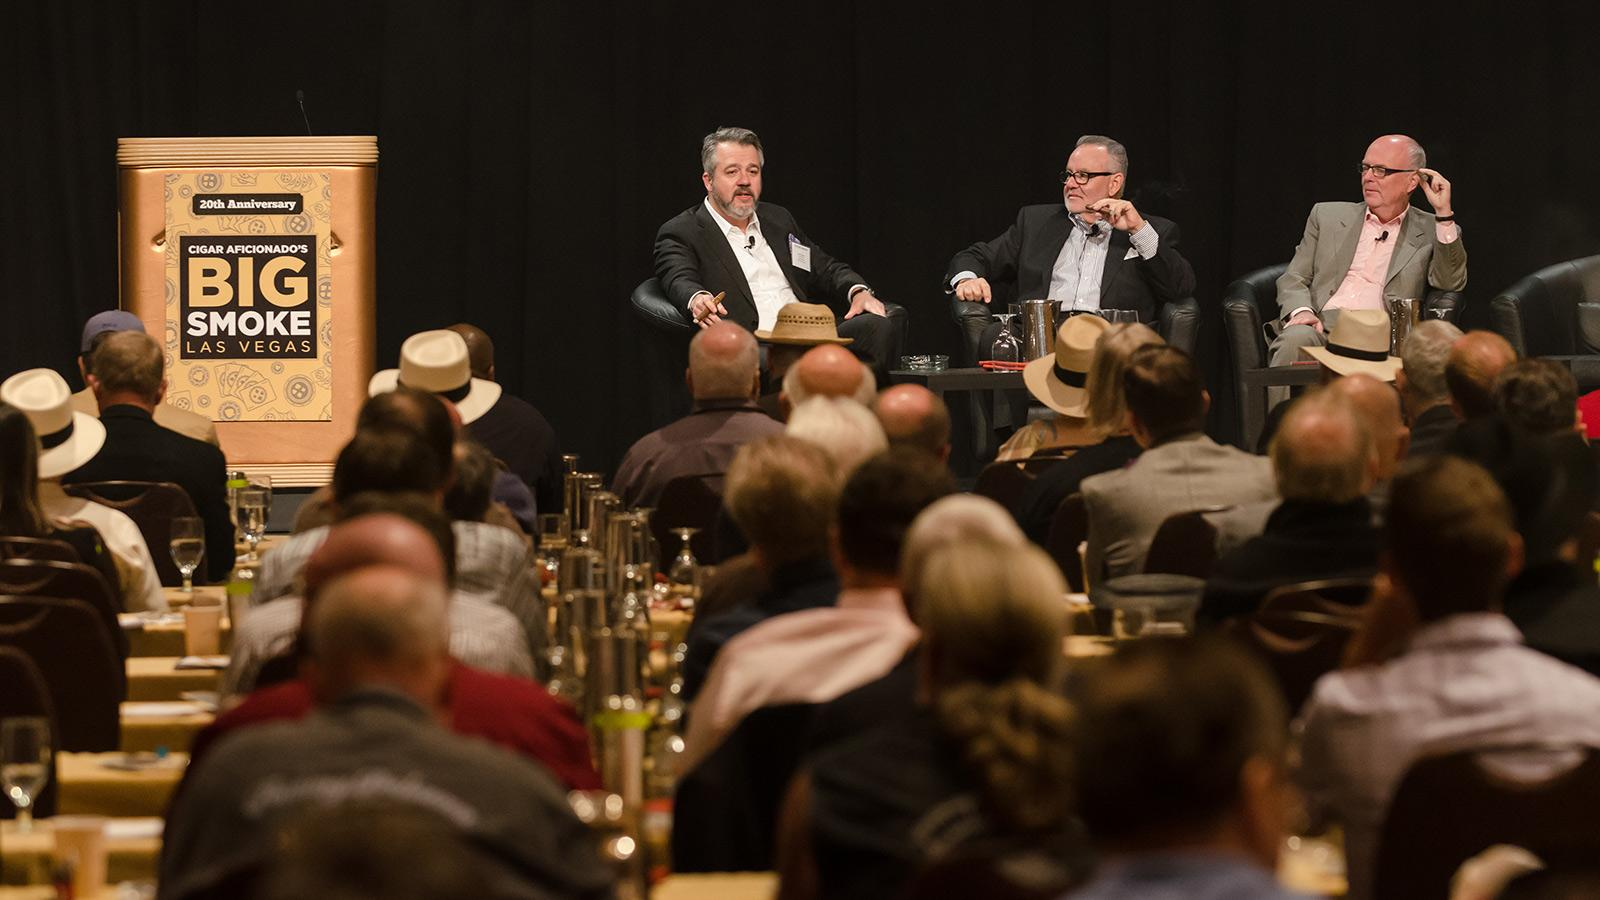 2015 Big Smoke Saturday Seminars—Twenty Years Of Fuente Fuente OpusX